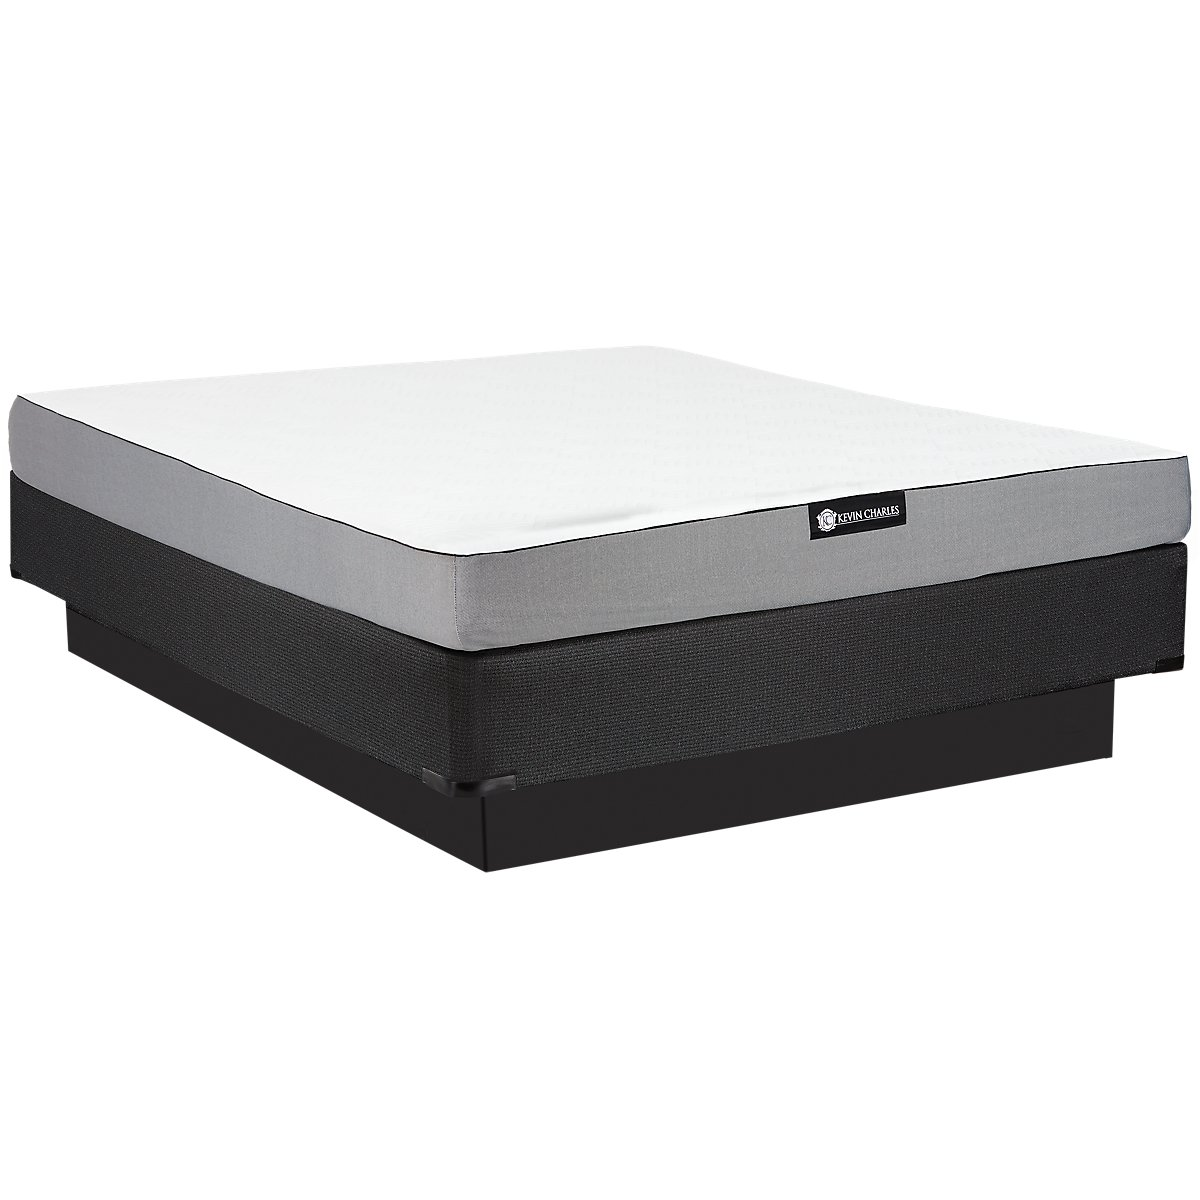 City furniture slumber firm memory foam mattress set Memory foam mattress set